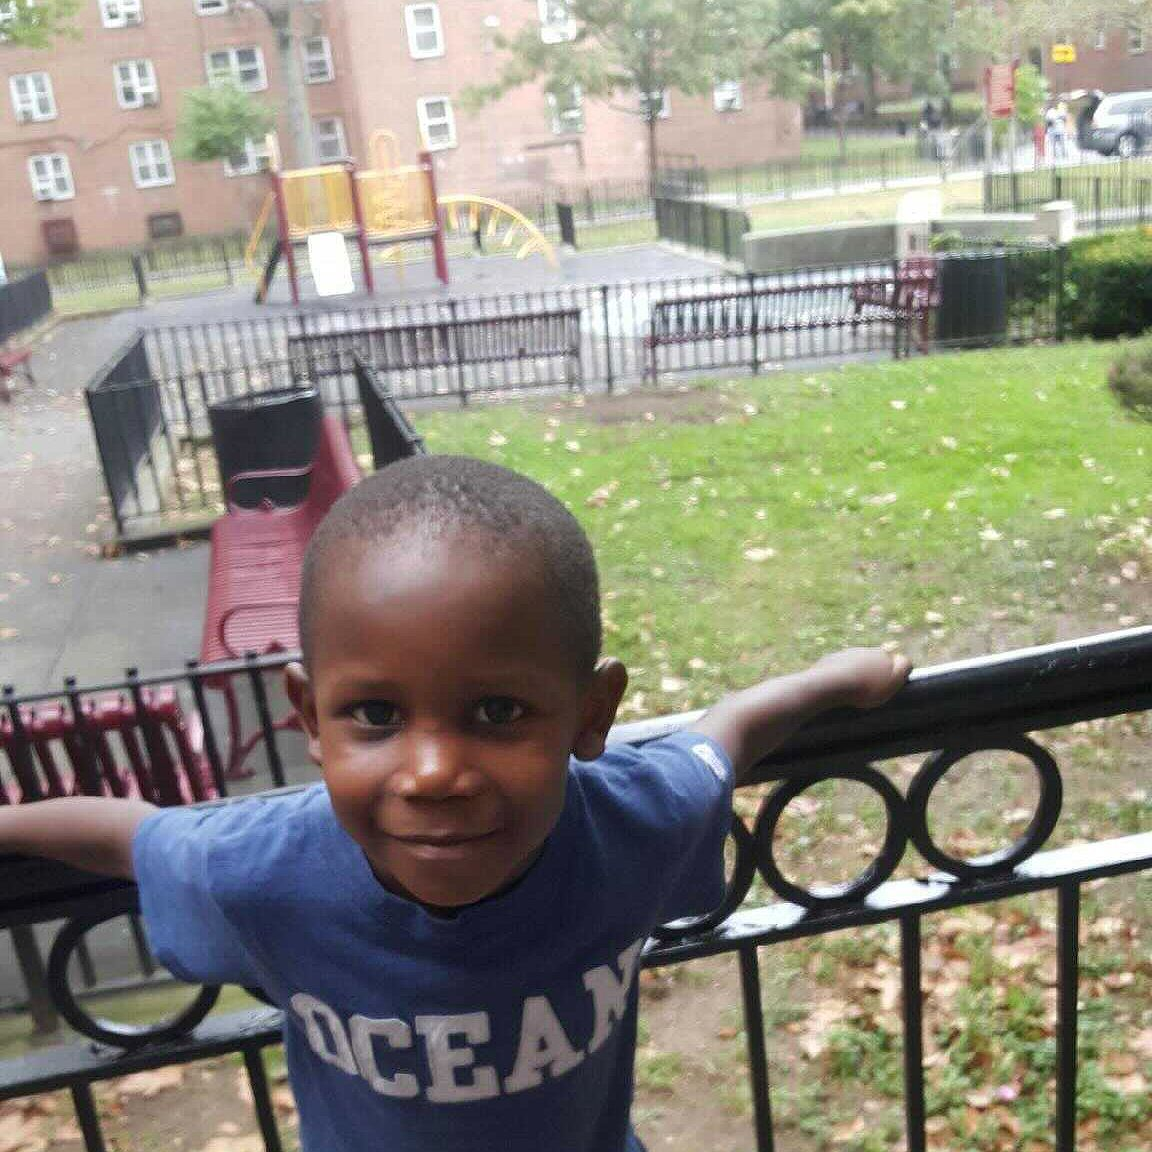 Red Hook Houses resident, Kyan, had an elevated level of lead in his system after an apartment he shares with his mother was tested for the substance.